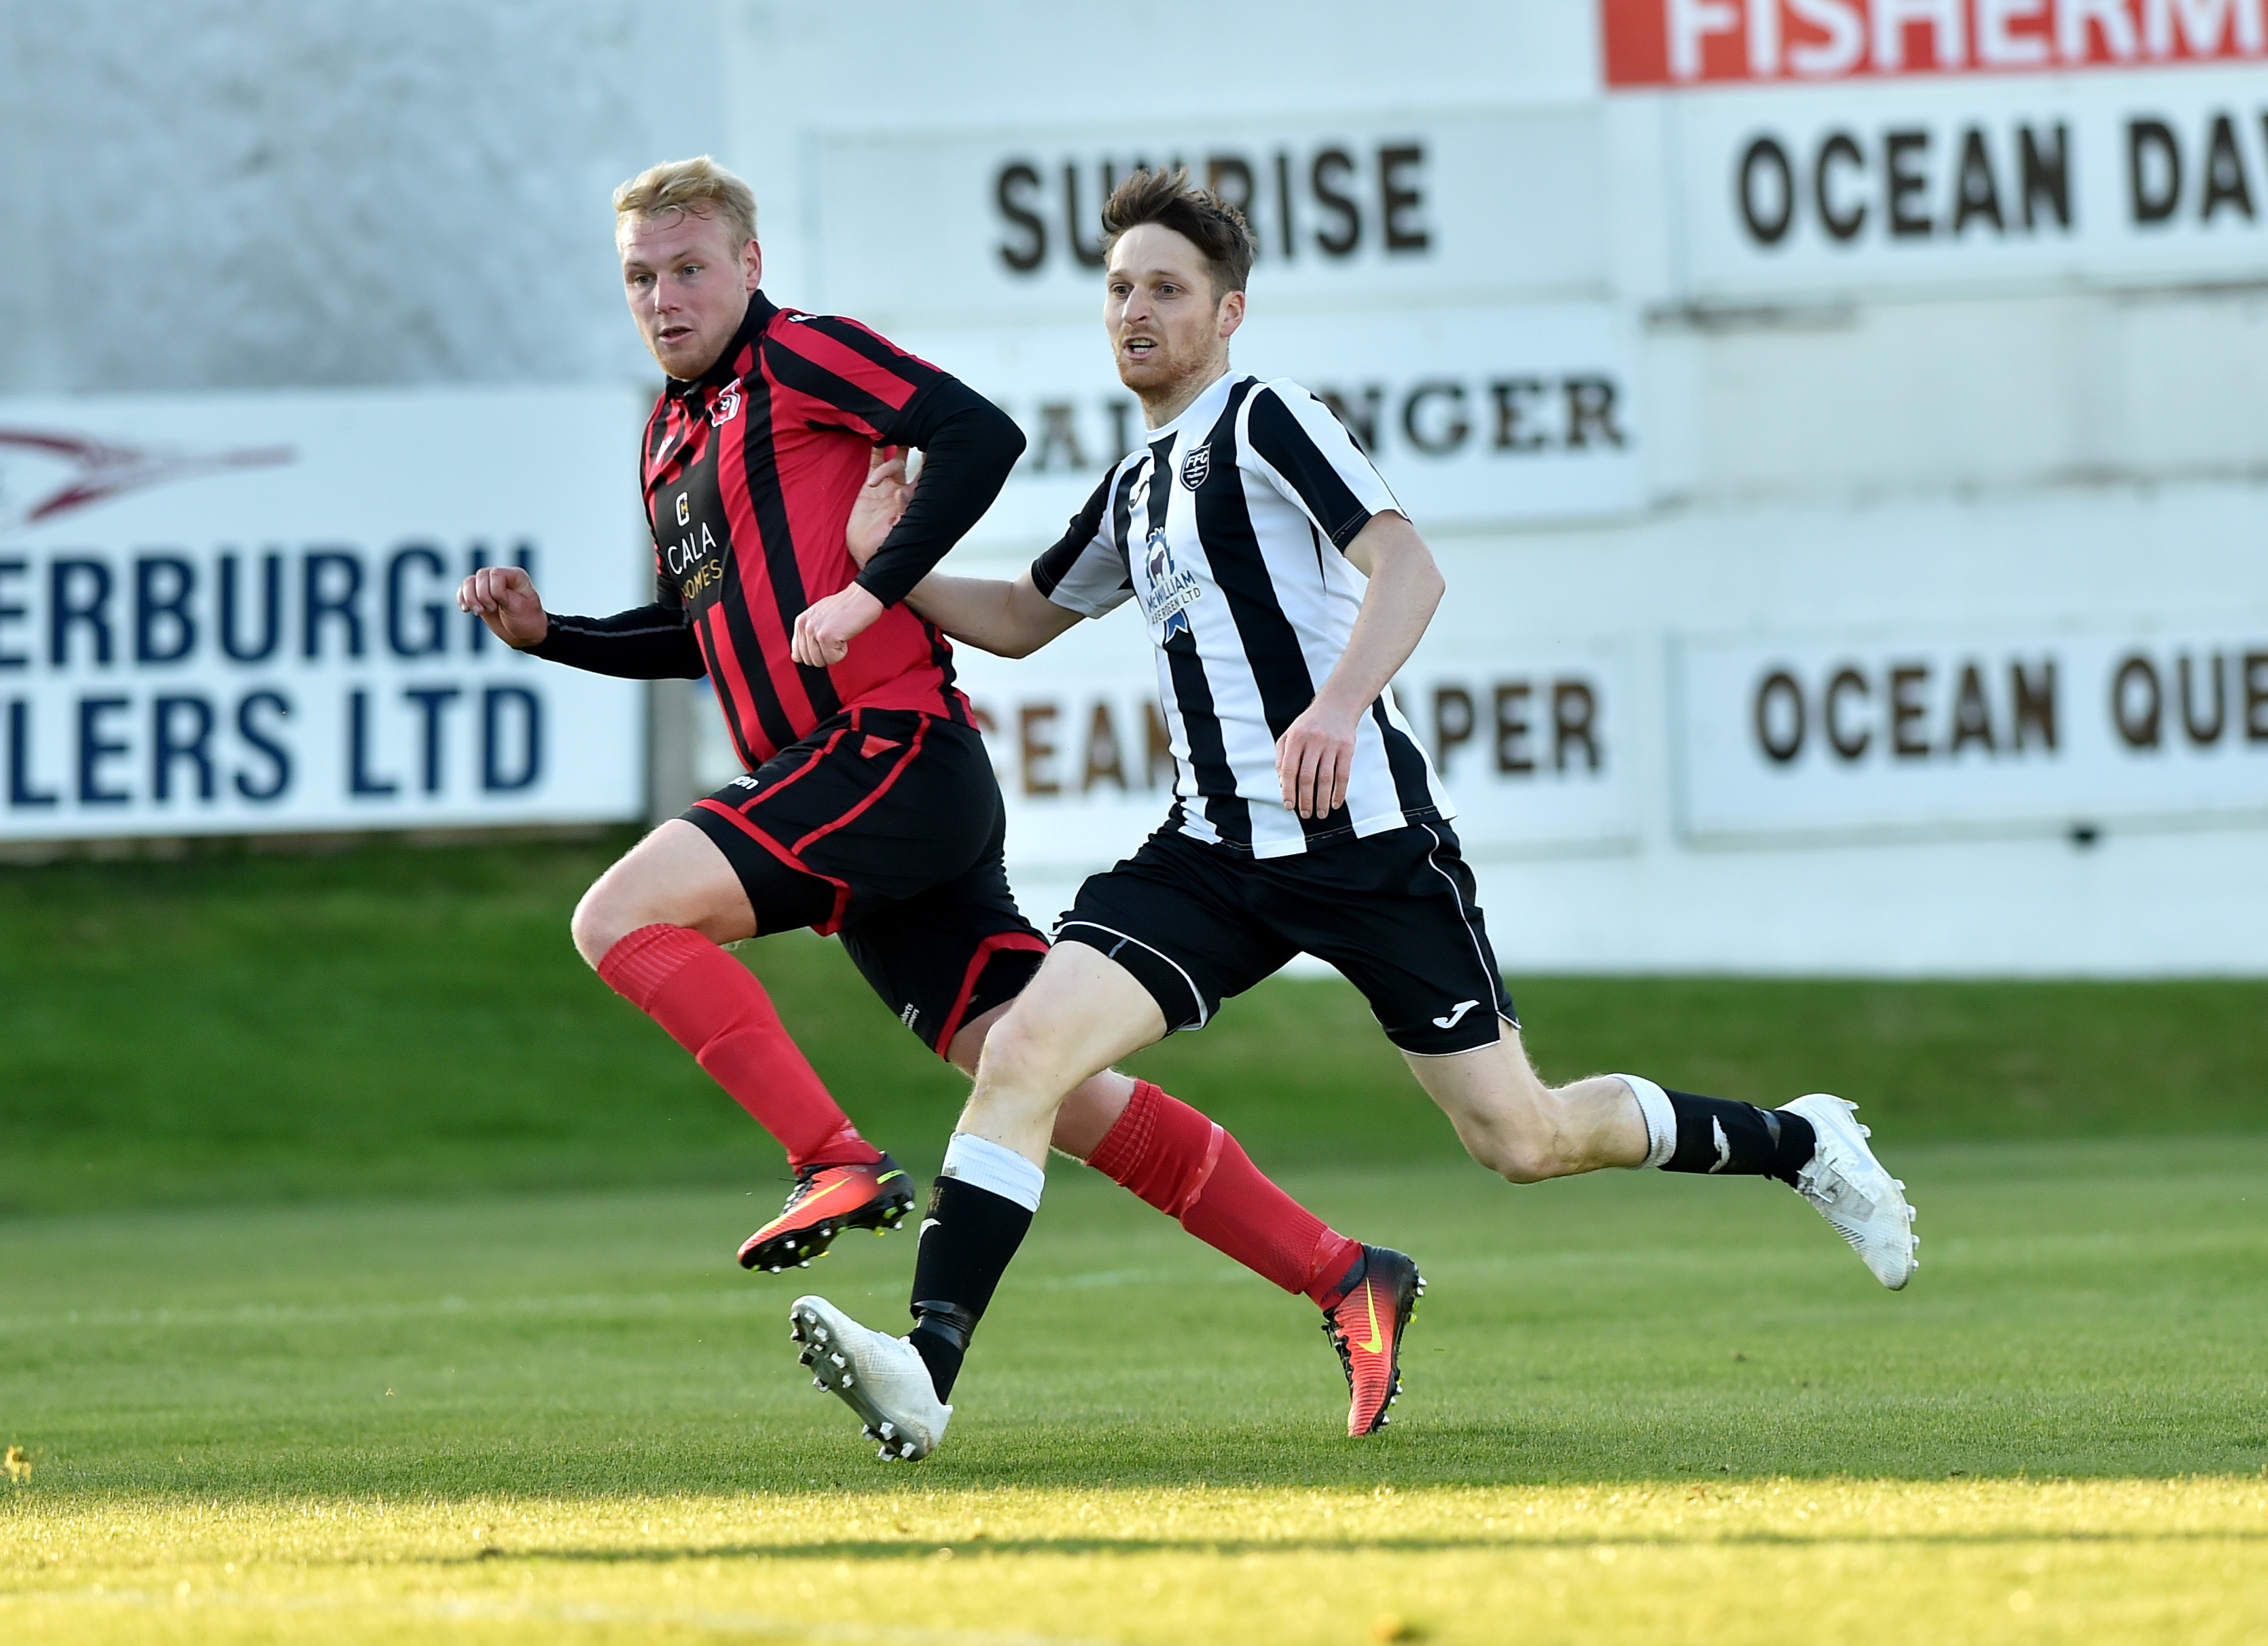 Chris Angus, left, is out. Picture by Scott Baxter